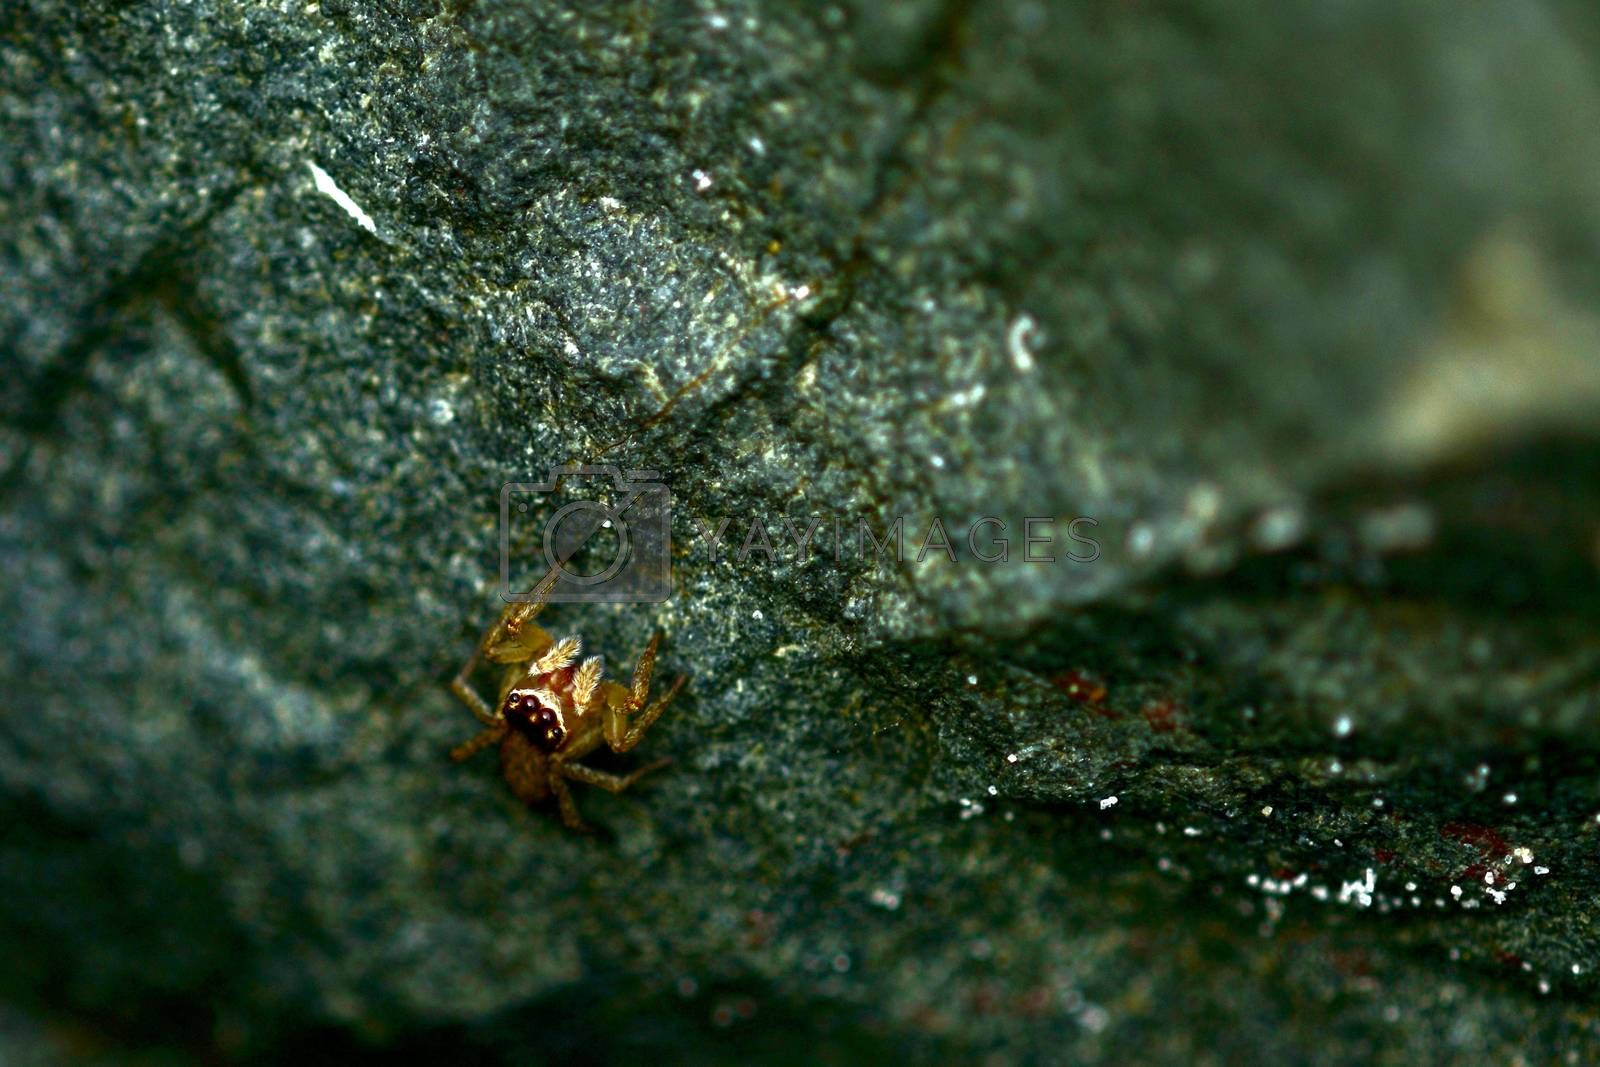 Jumping spiders are generallydiurnal, active hunters.